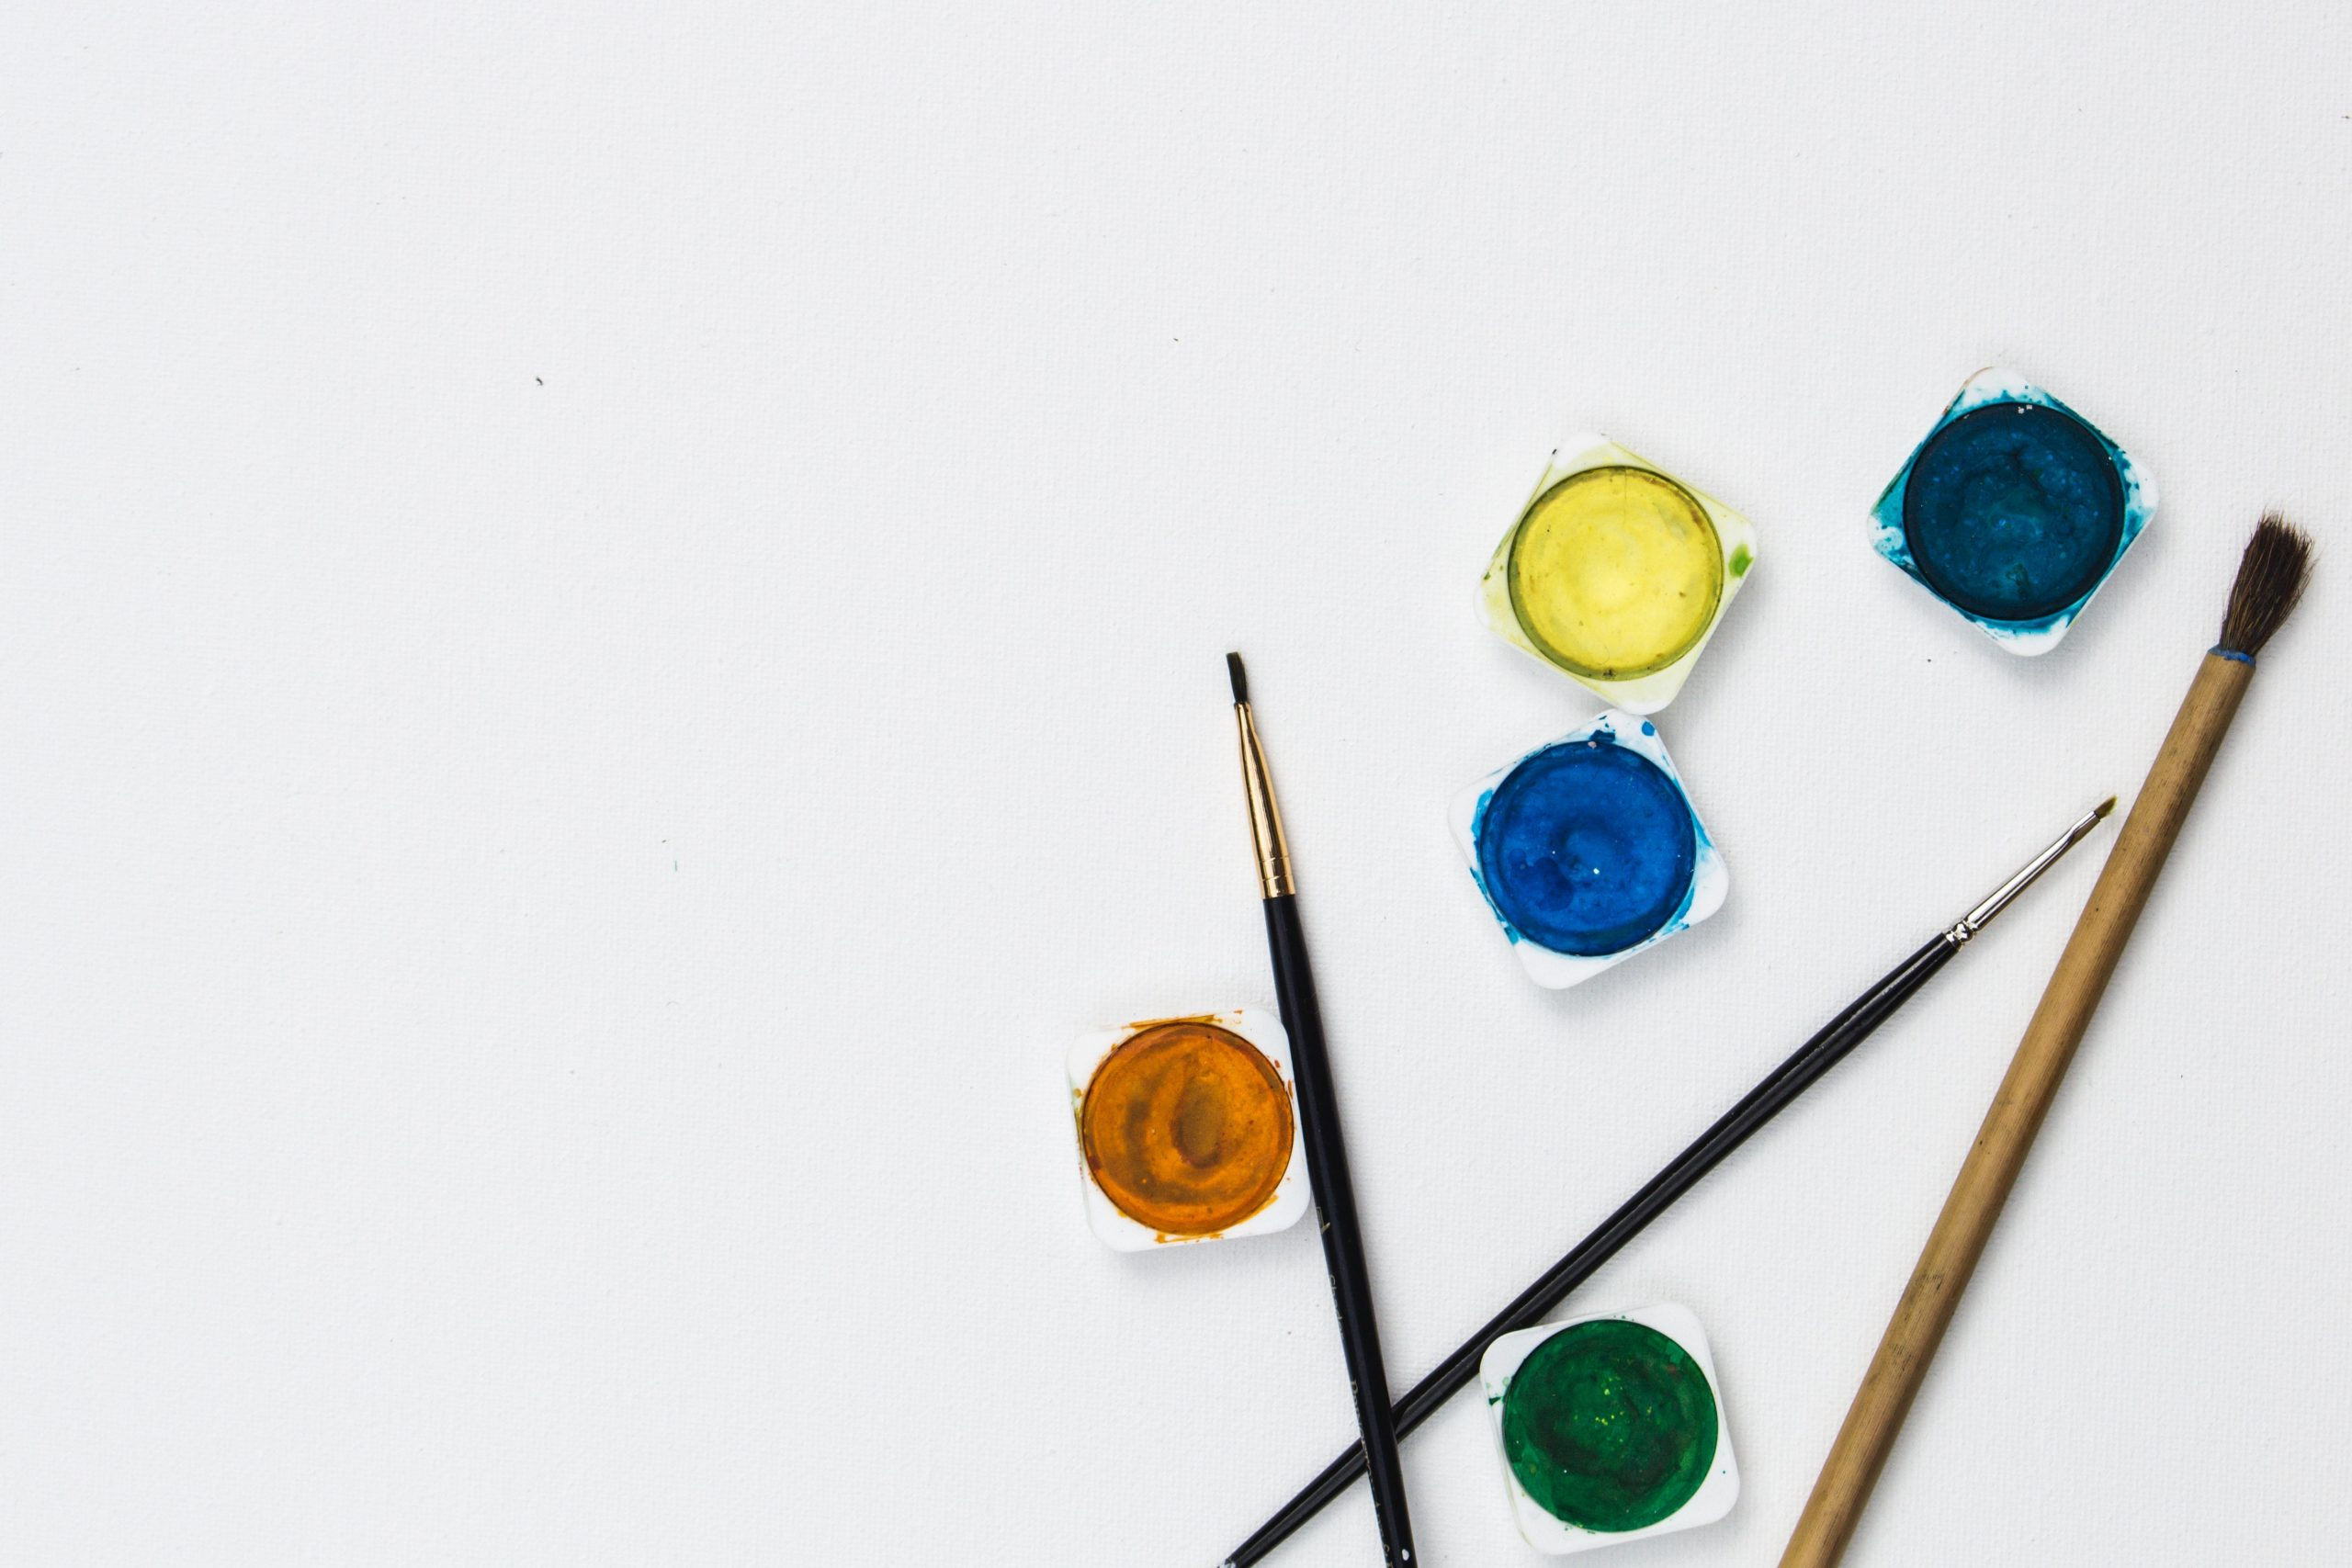 Paint brushes and different paint colors on a white background